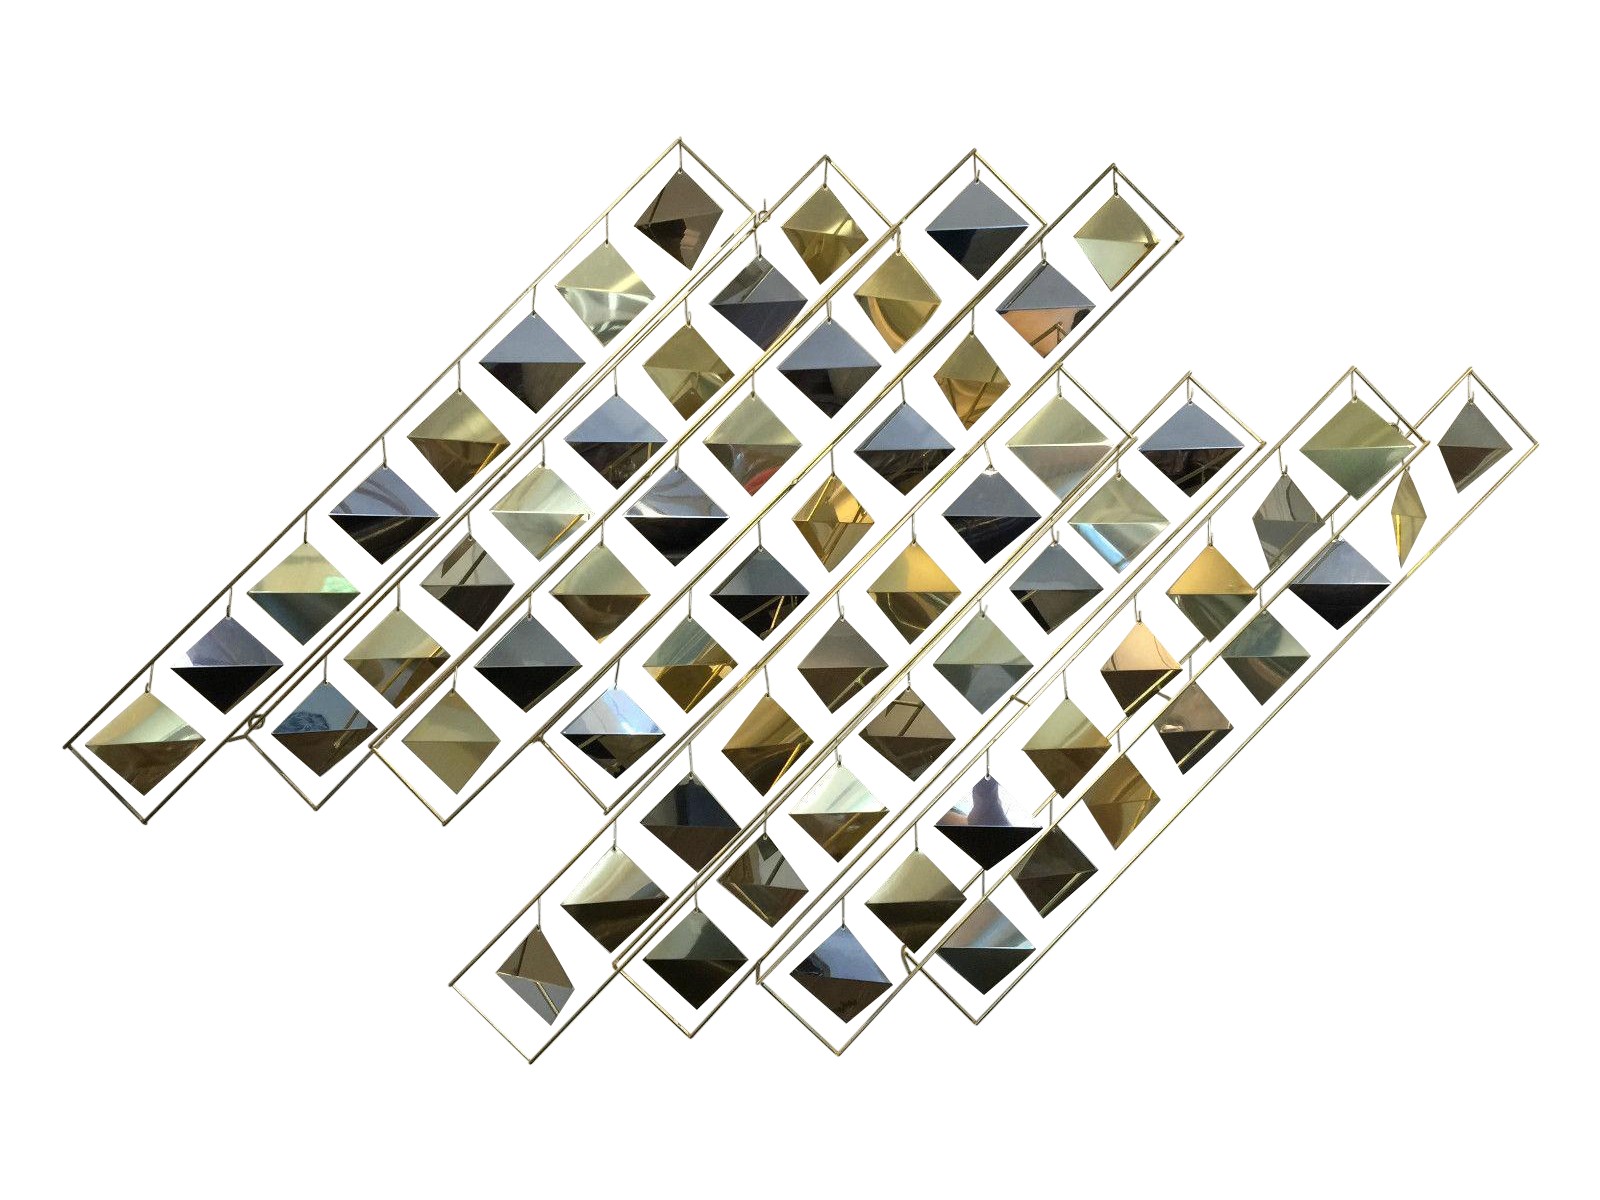 Kinetic drawing installation art. Curtis jere brass wall